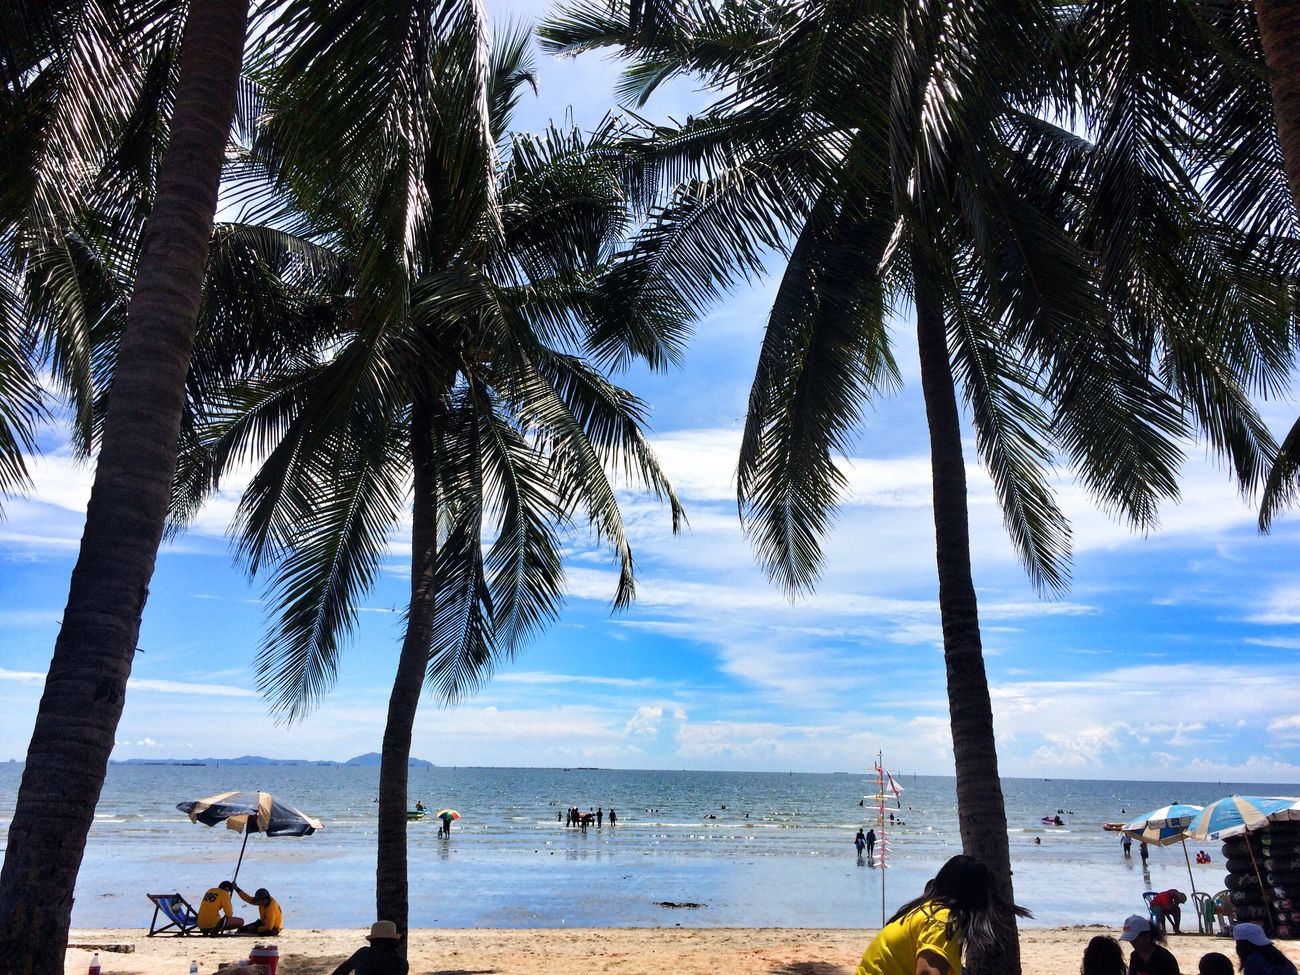 The beach Palm Tree Sea Water Beach Tree Horizon Over Water Tranquil Scene Incidental People Vacations Tranquility Sky Tourist Tourism Scenics Beauty In Nature Mode Of Transport Nature Tree Trunk Shore Travel Destinations